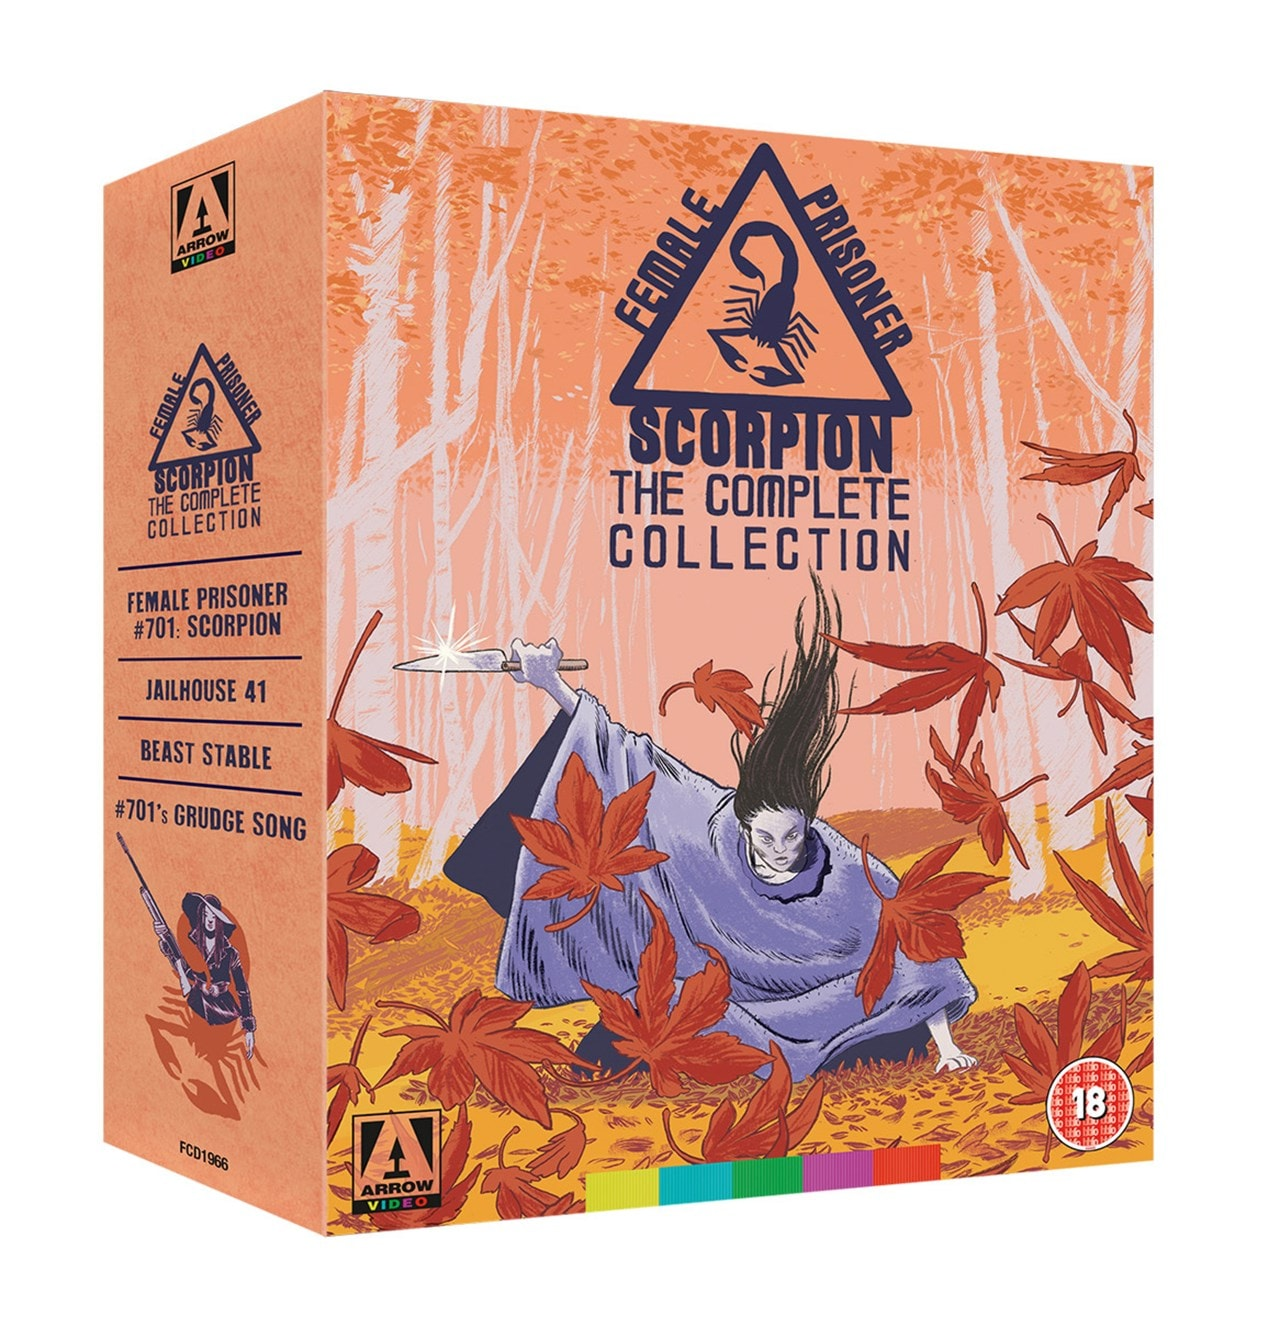 Female Prisoner Scorpion: The Complete Collection - 2